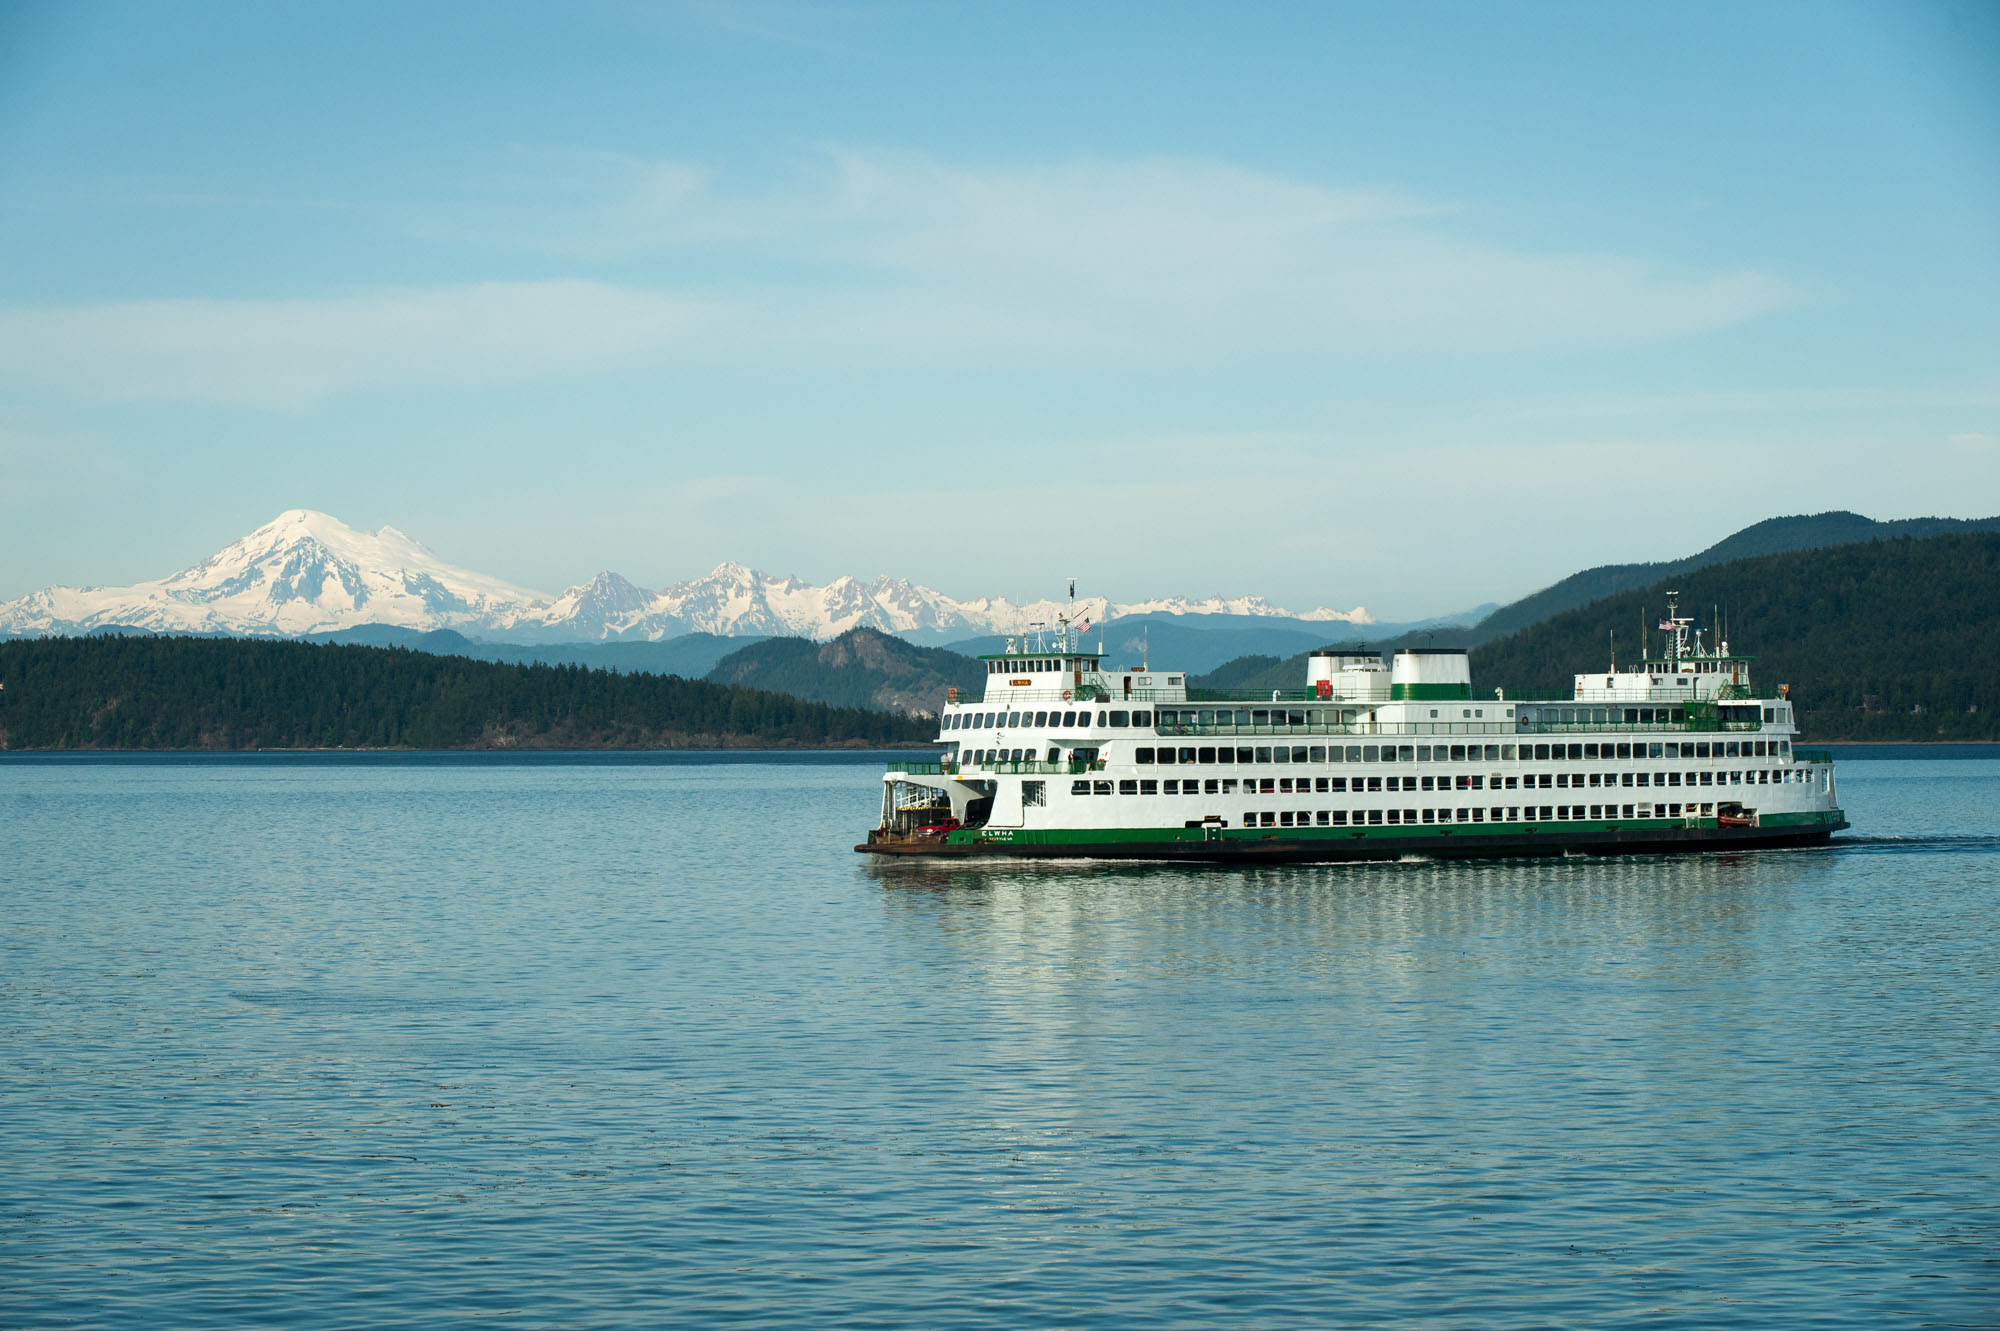 Start your journey by Ferry